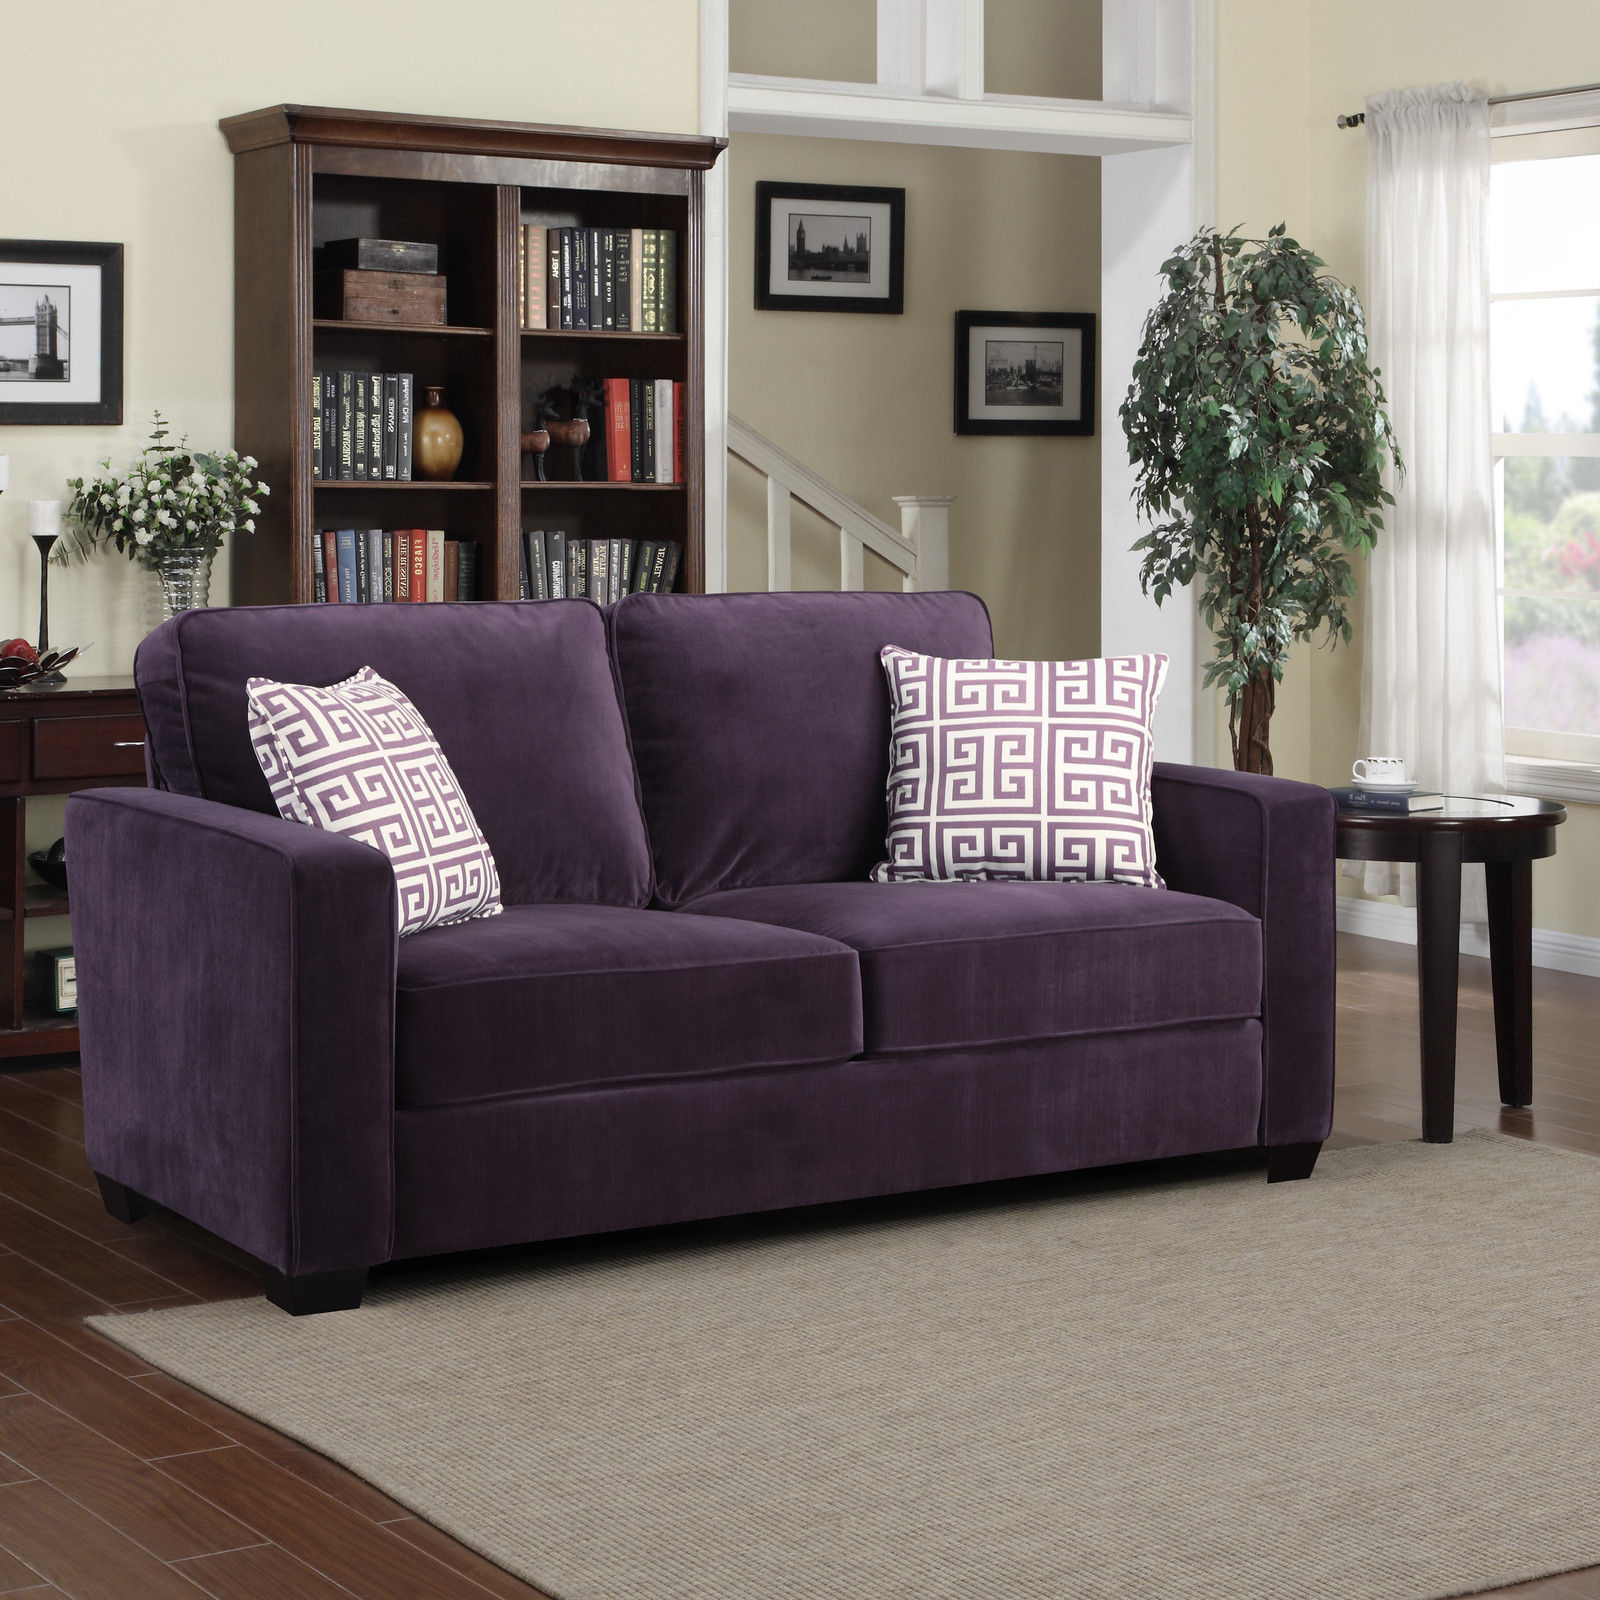 Lilac Sofa Bed | Purple Sofa | Living Room With Purple Sofa